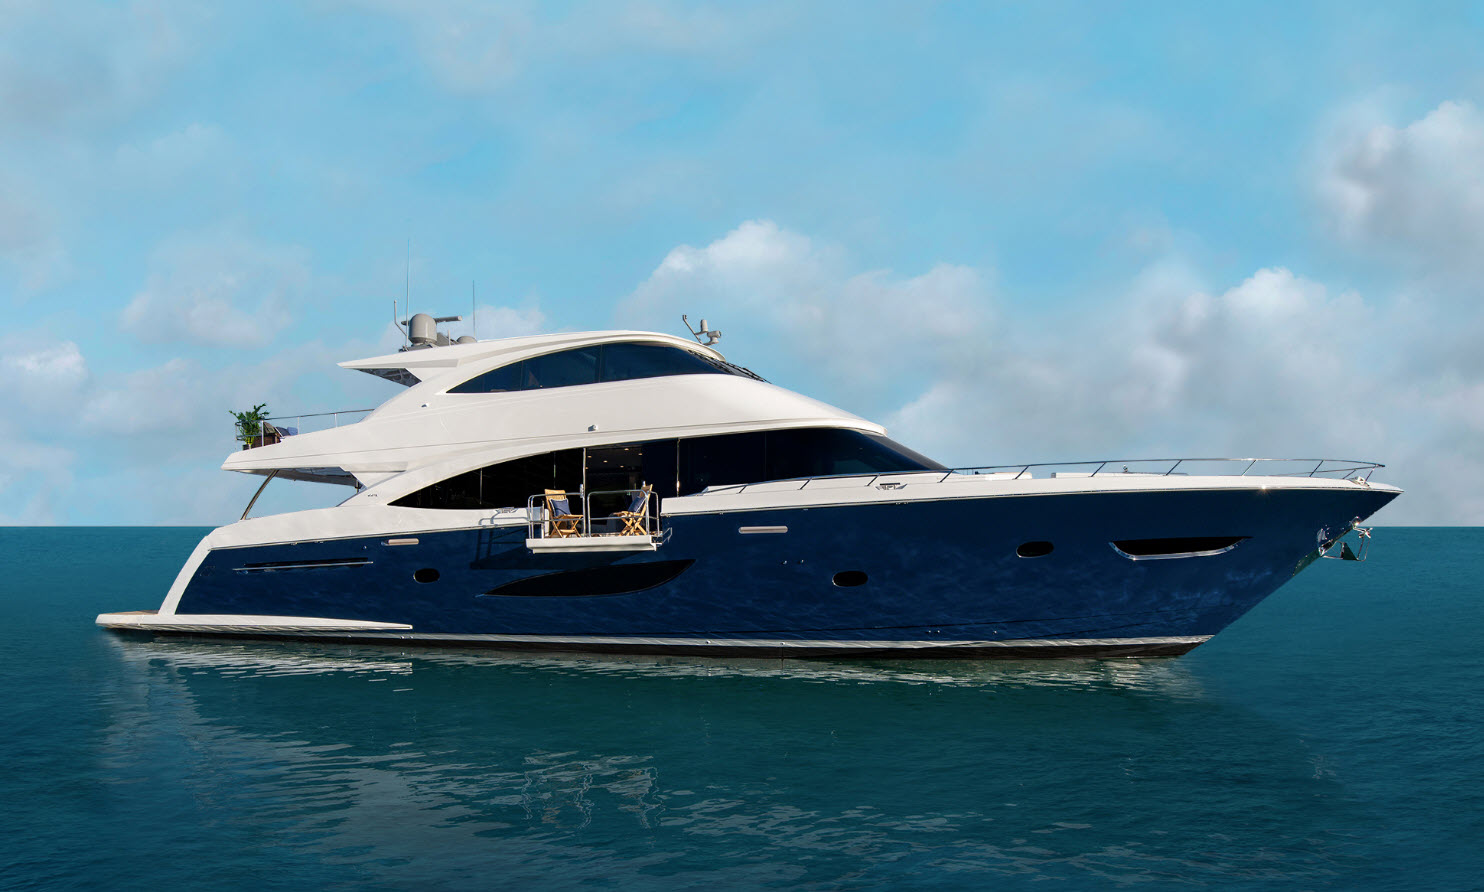 Viking 93 Motor Yacht For Sale At FLIBS